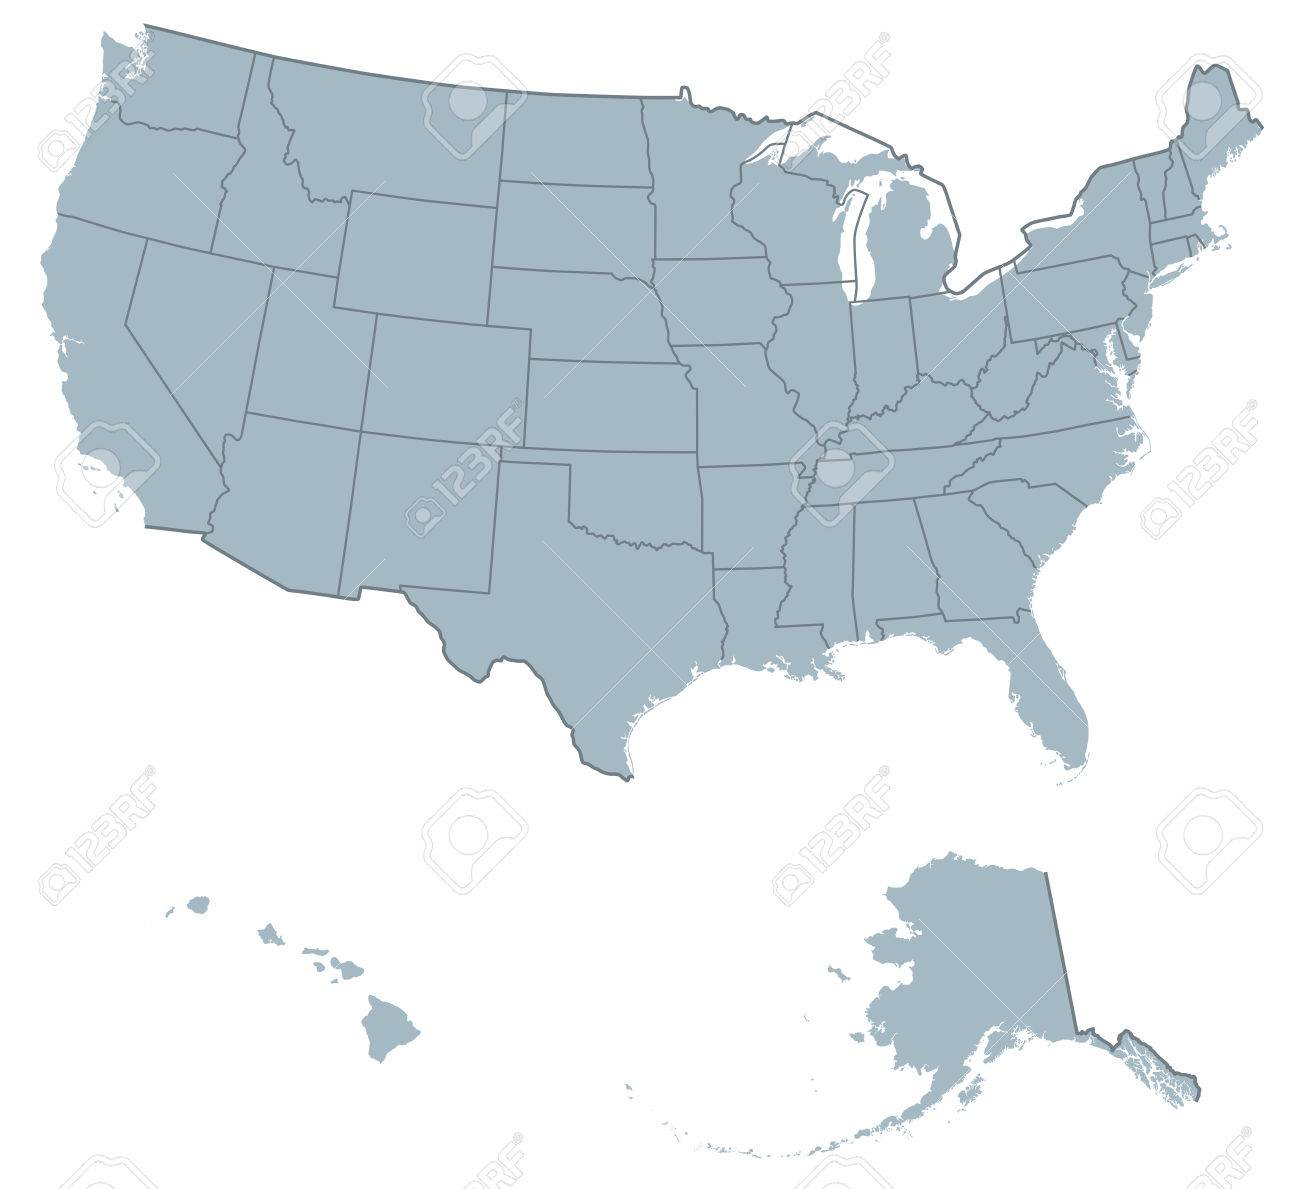 USA United States Of America Political Map. The U.S. States Including Alaska  And Hawaii With